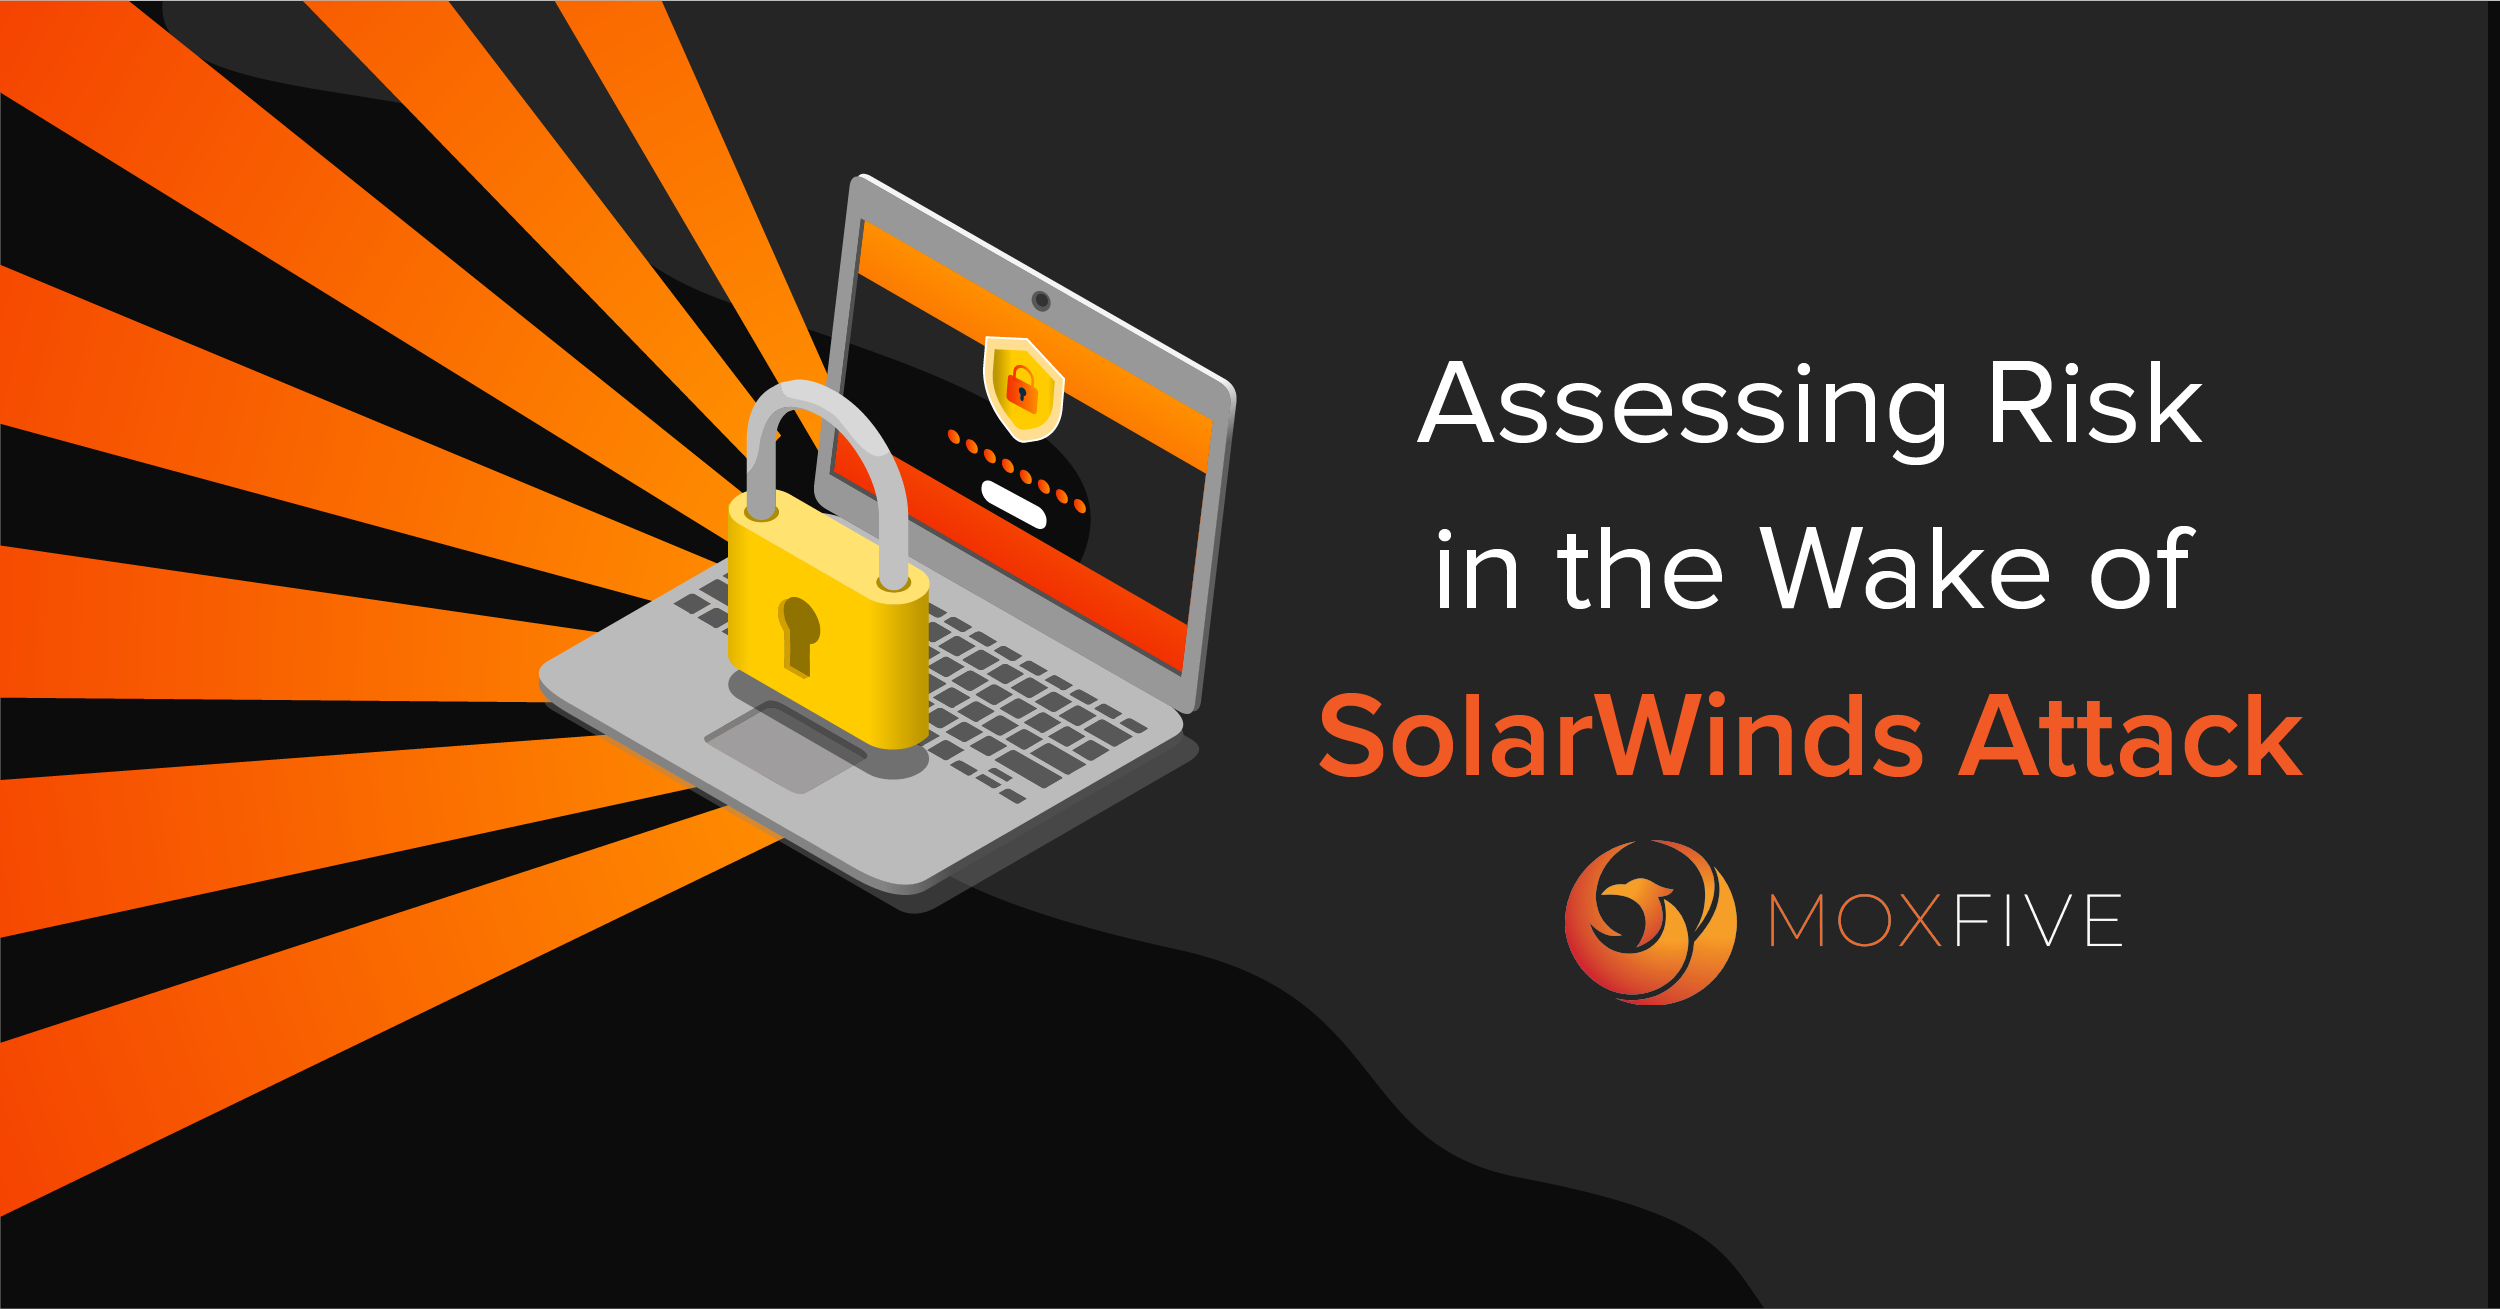 Assessing Risk in the Wake of SolarWinds Attack